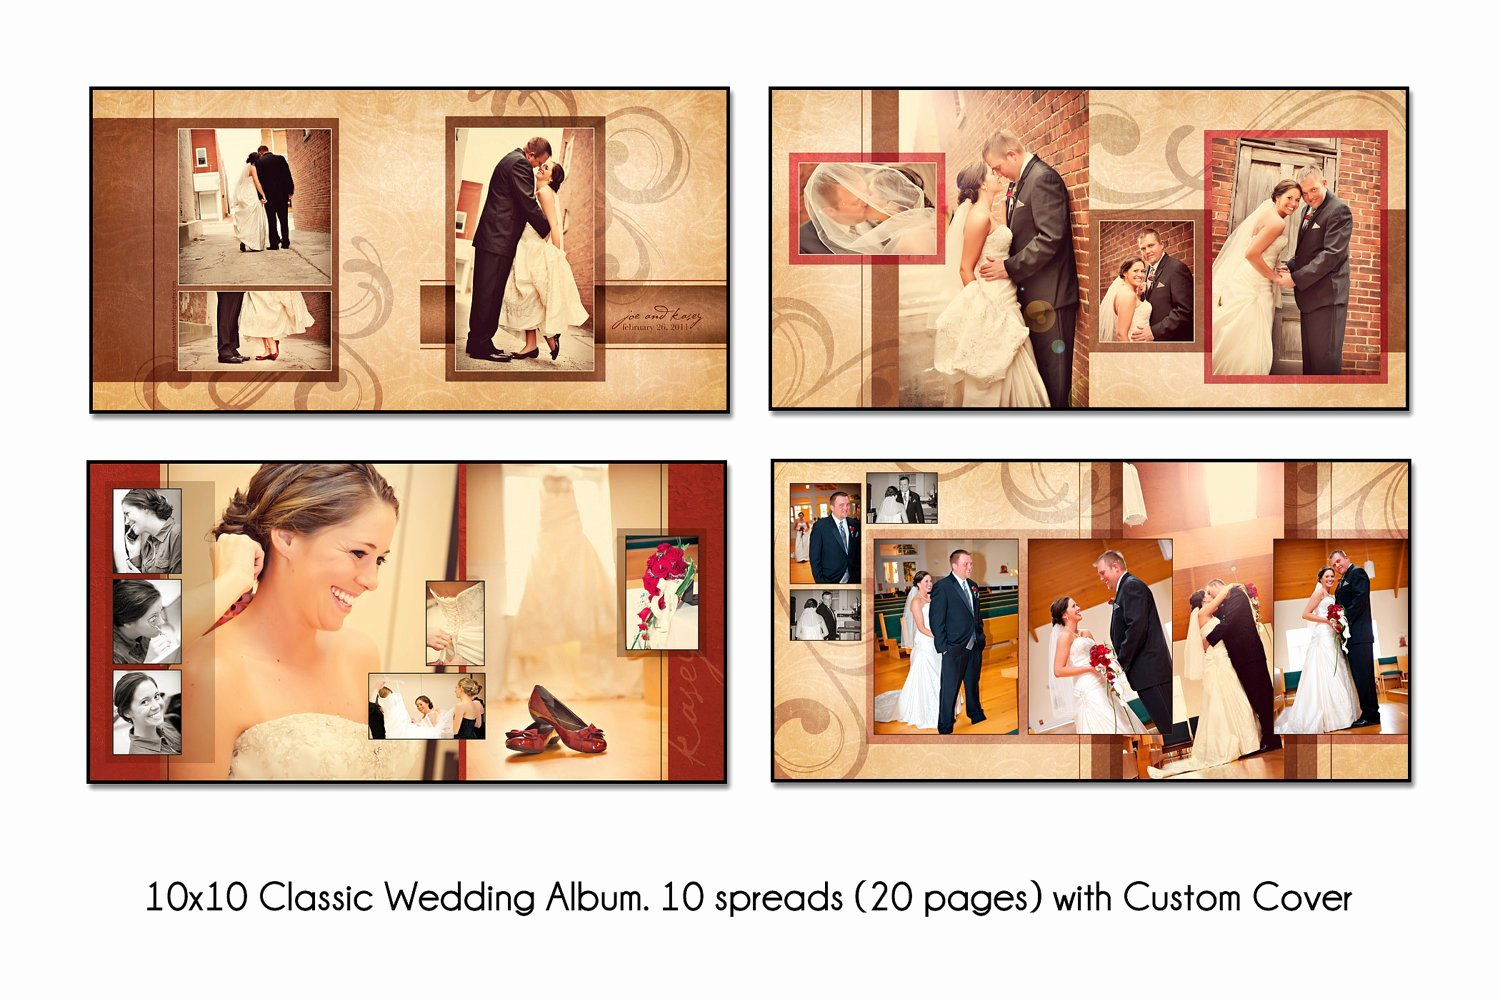 Free Photo Album Template Unique Psd Wedding Album Template Autumn Swirl 12x12 10spread 20